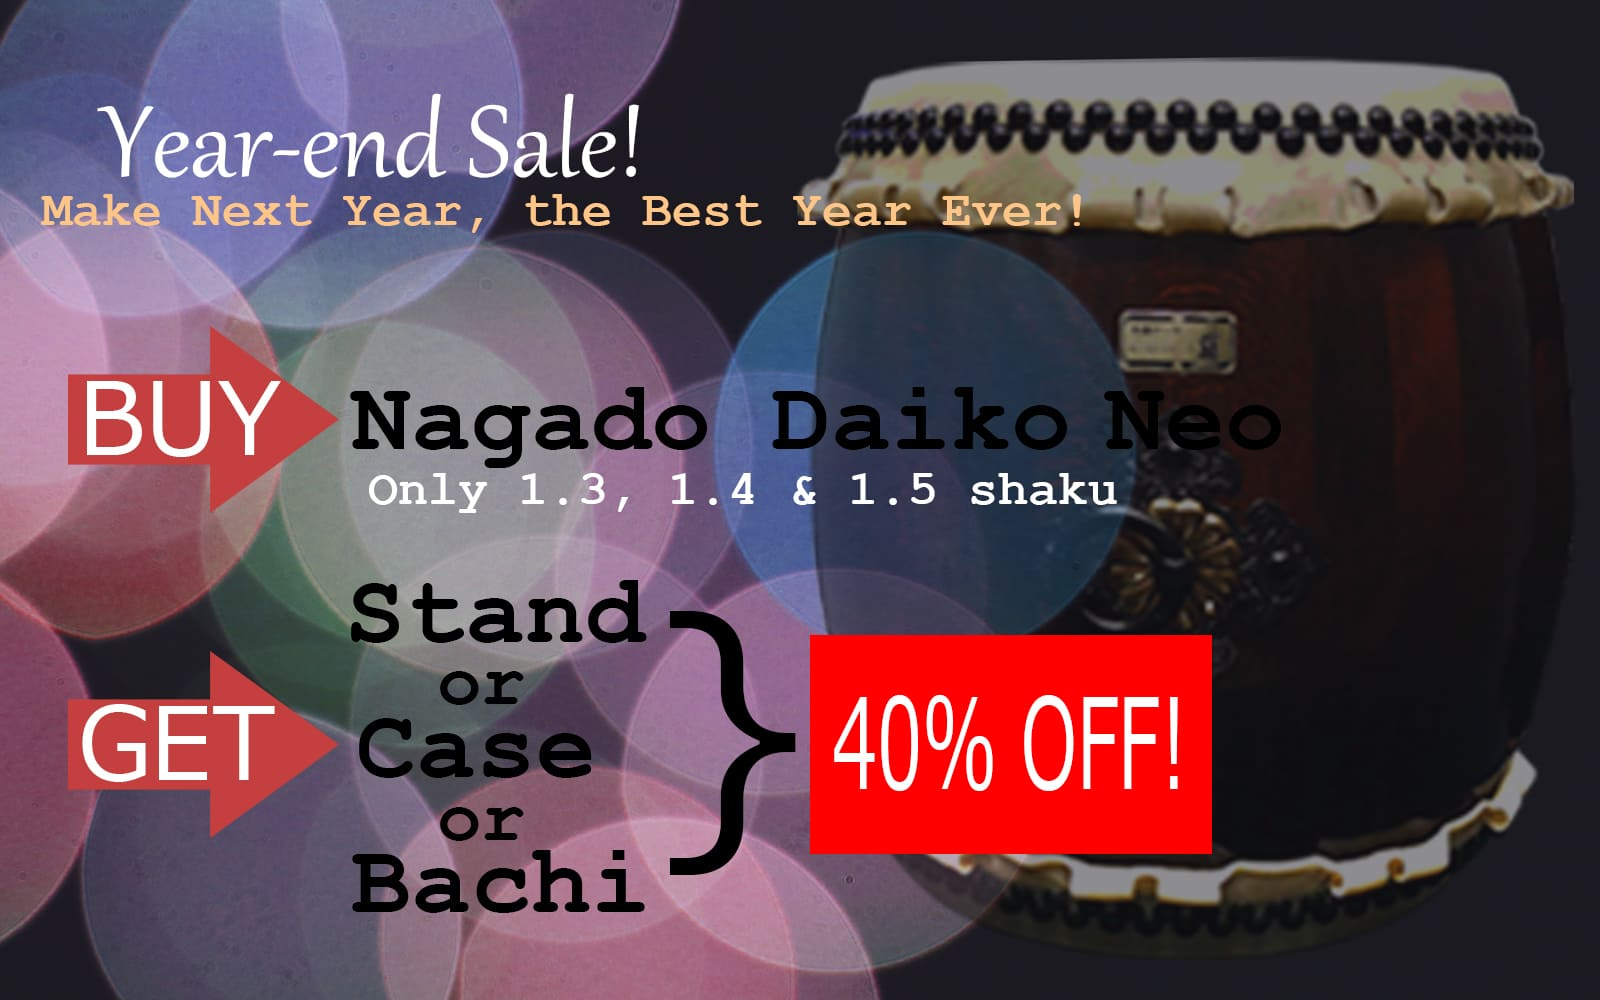 Year-end Sale Nagado Daiko Neo